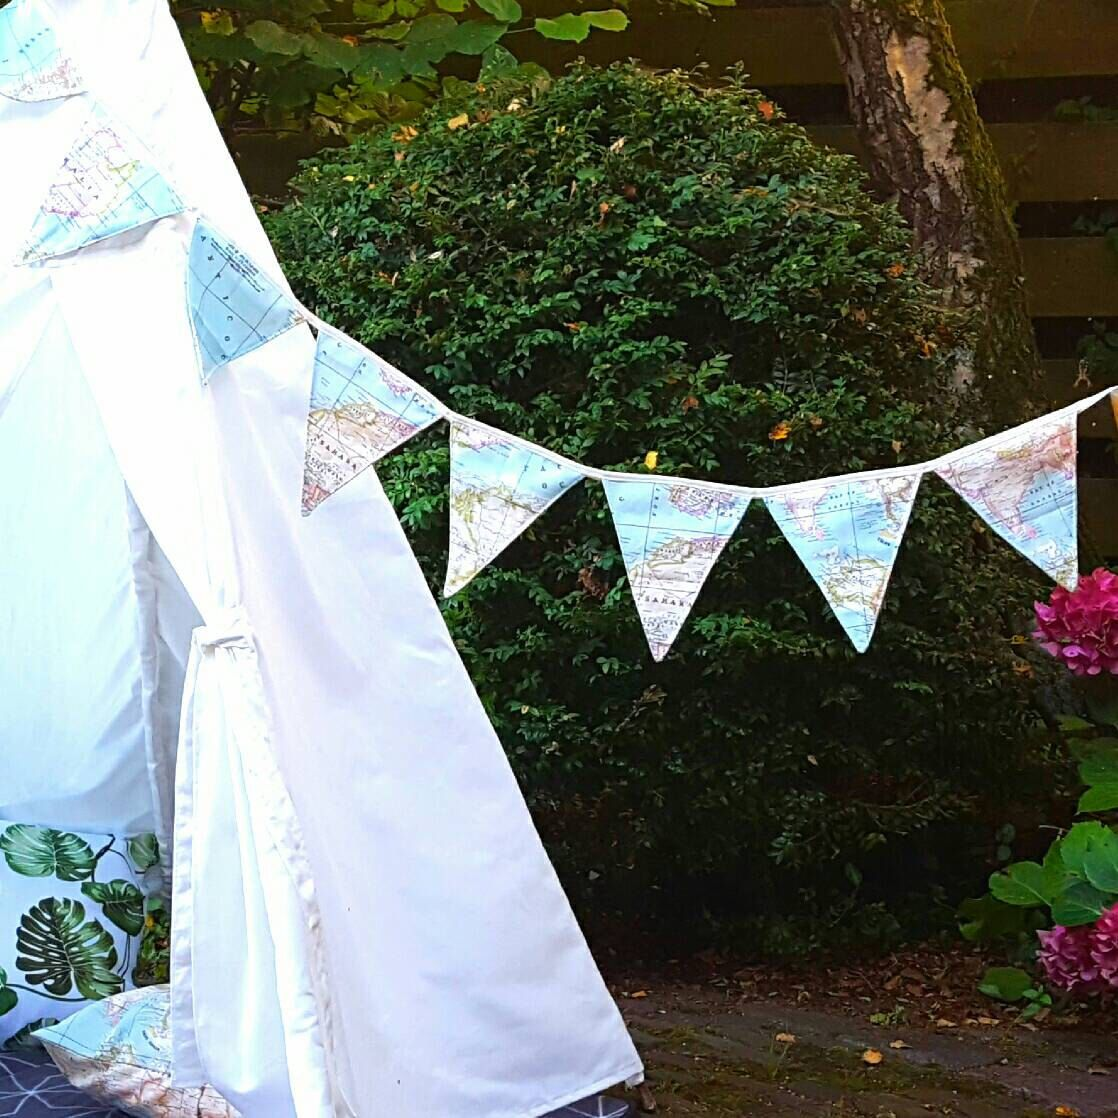 Handmade fabric bunting world map banner 8 flags flag line flag handmade fabric bunting world map banner 8 flags flag line flag garland gumiabroncs Gallery